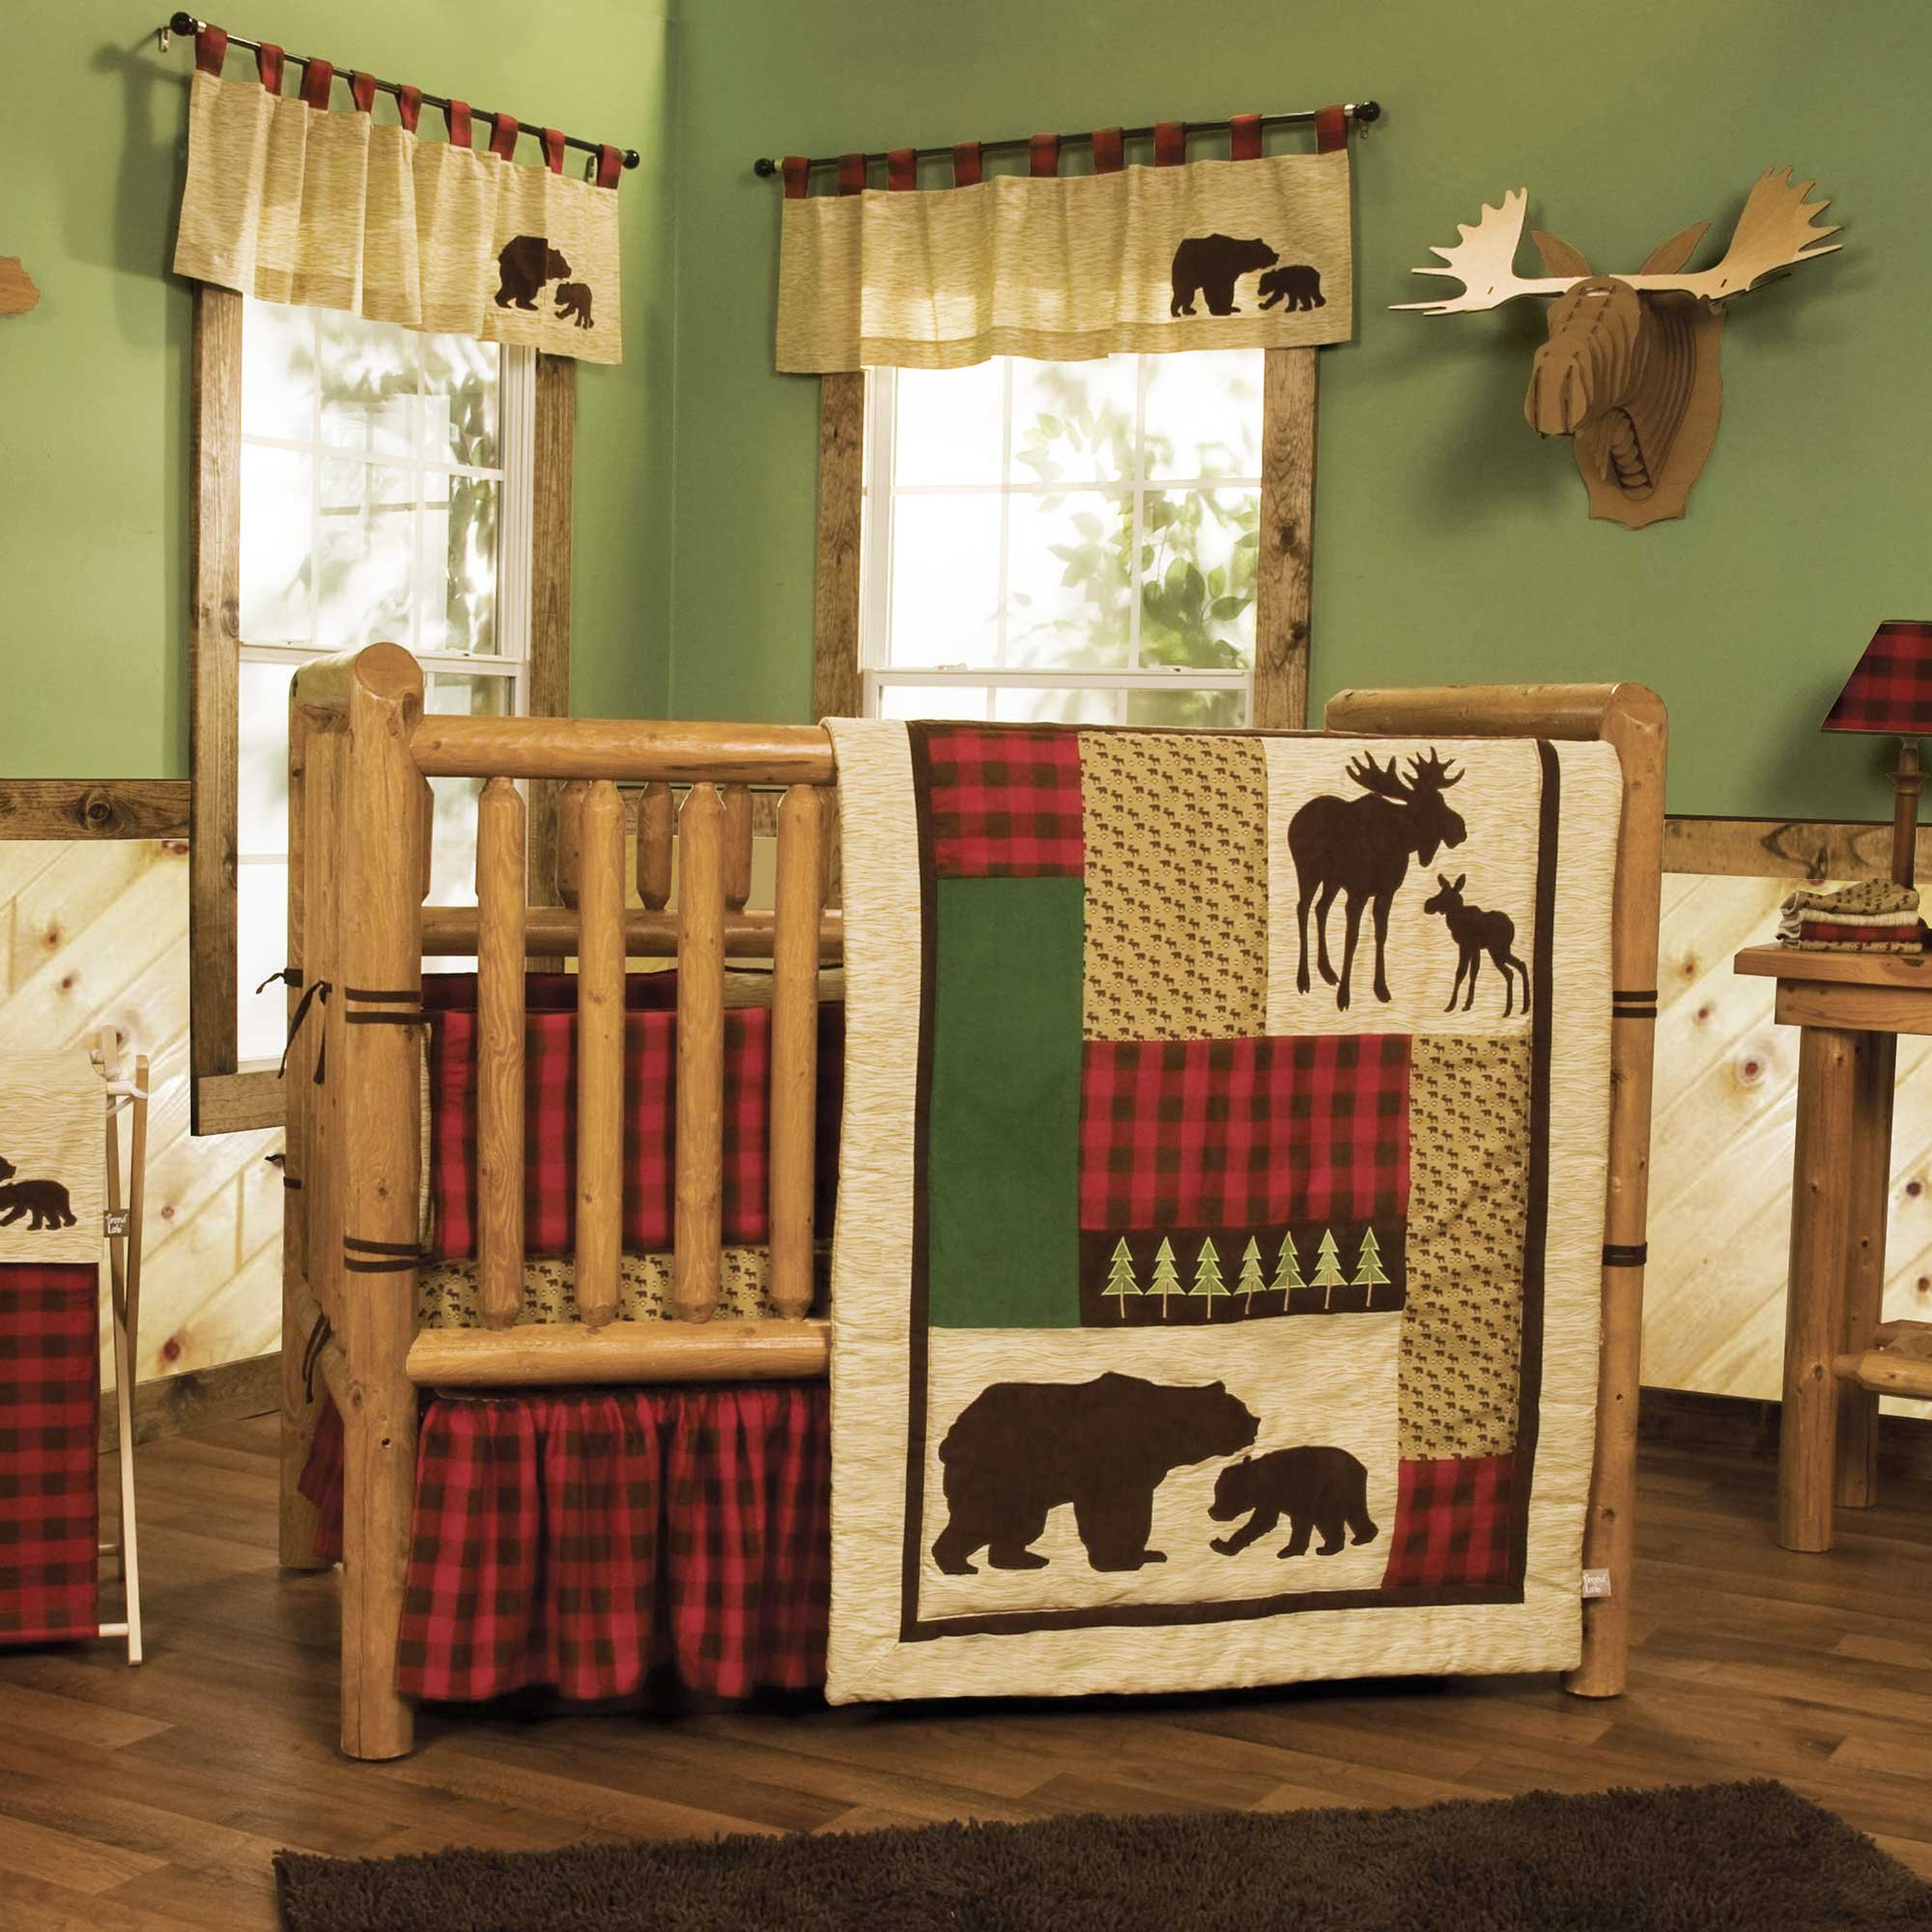 Northwoods 4 Piece Baby Crib Bedding Set with Bumper by Trend Lab by Trend Lab